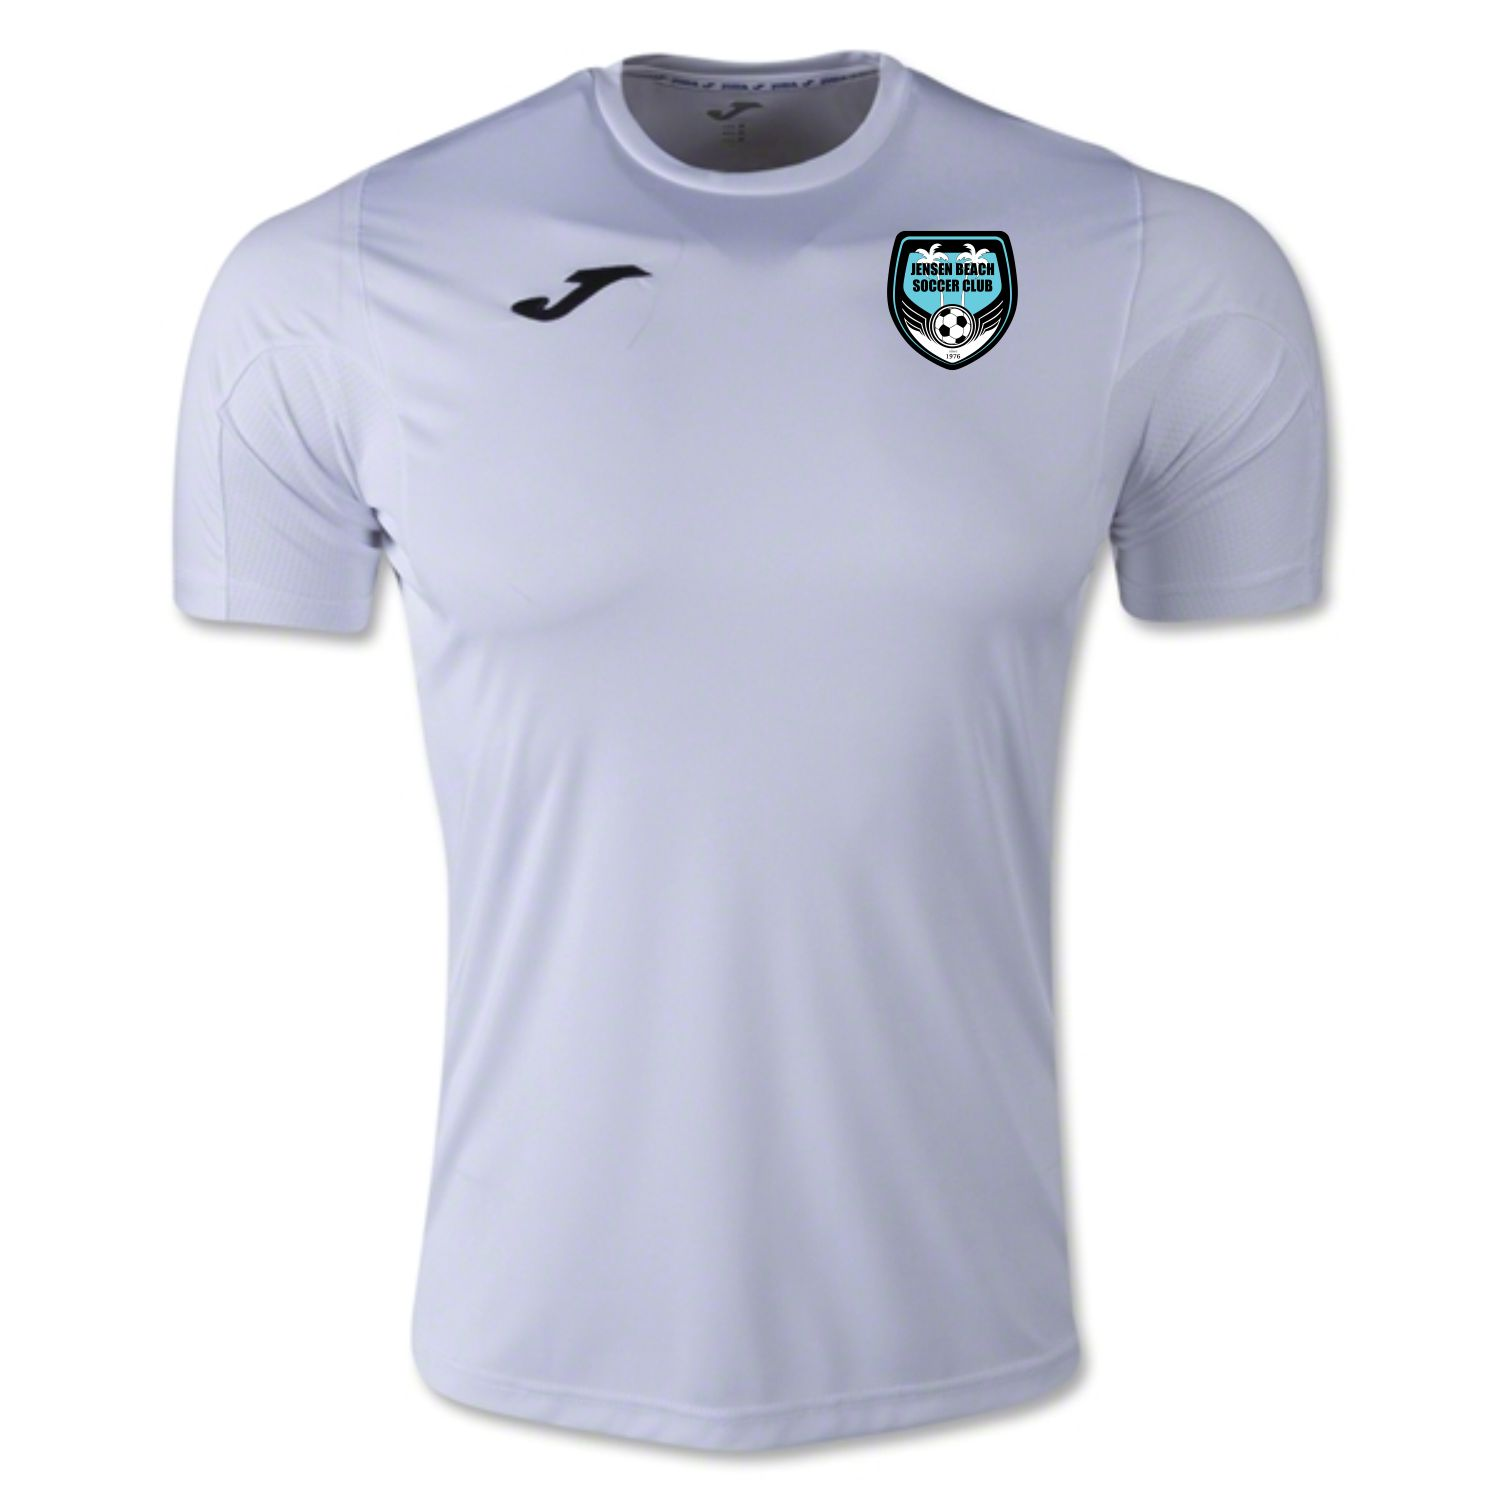 Jensen Beach Joma Estadio Jersey - White 100146.200